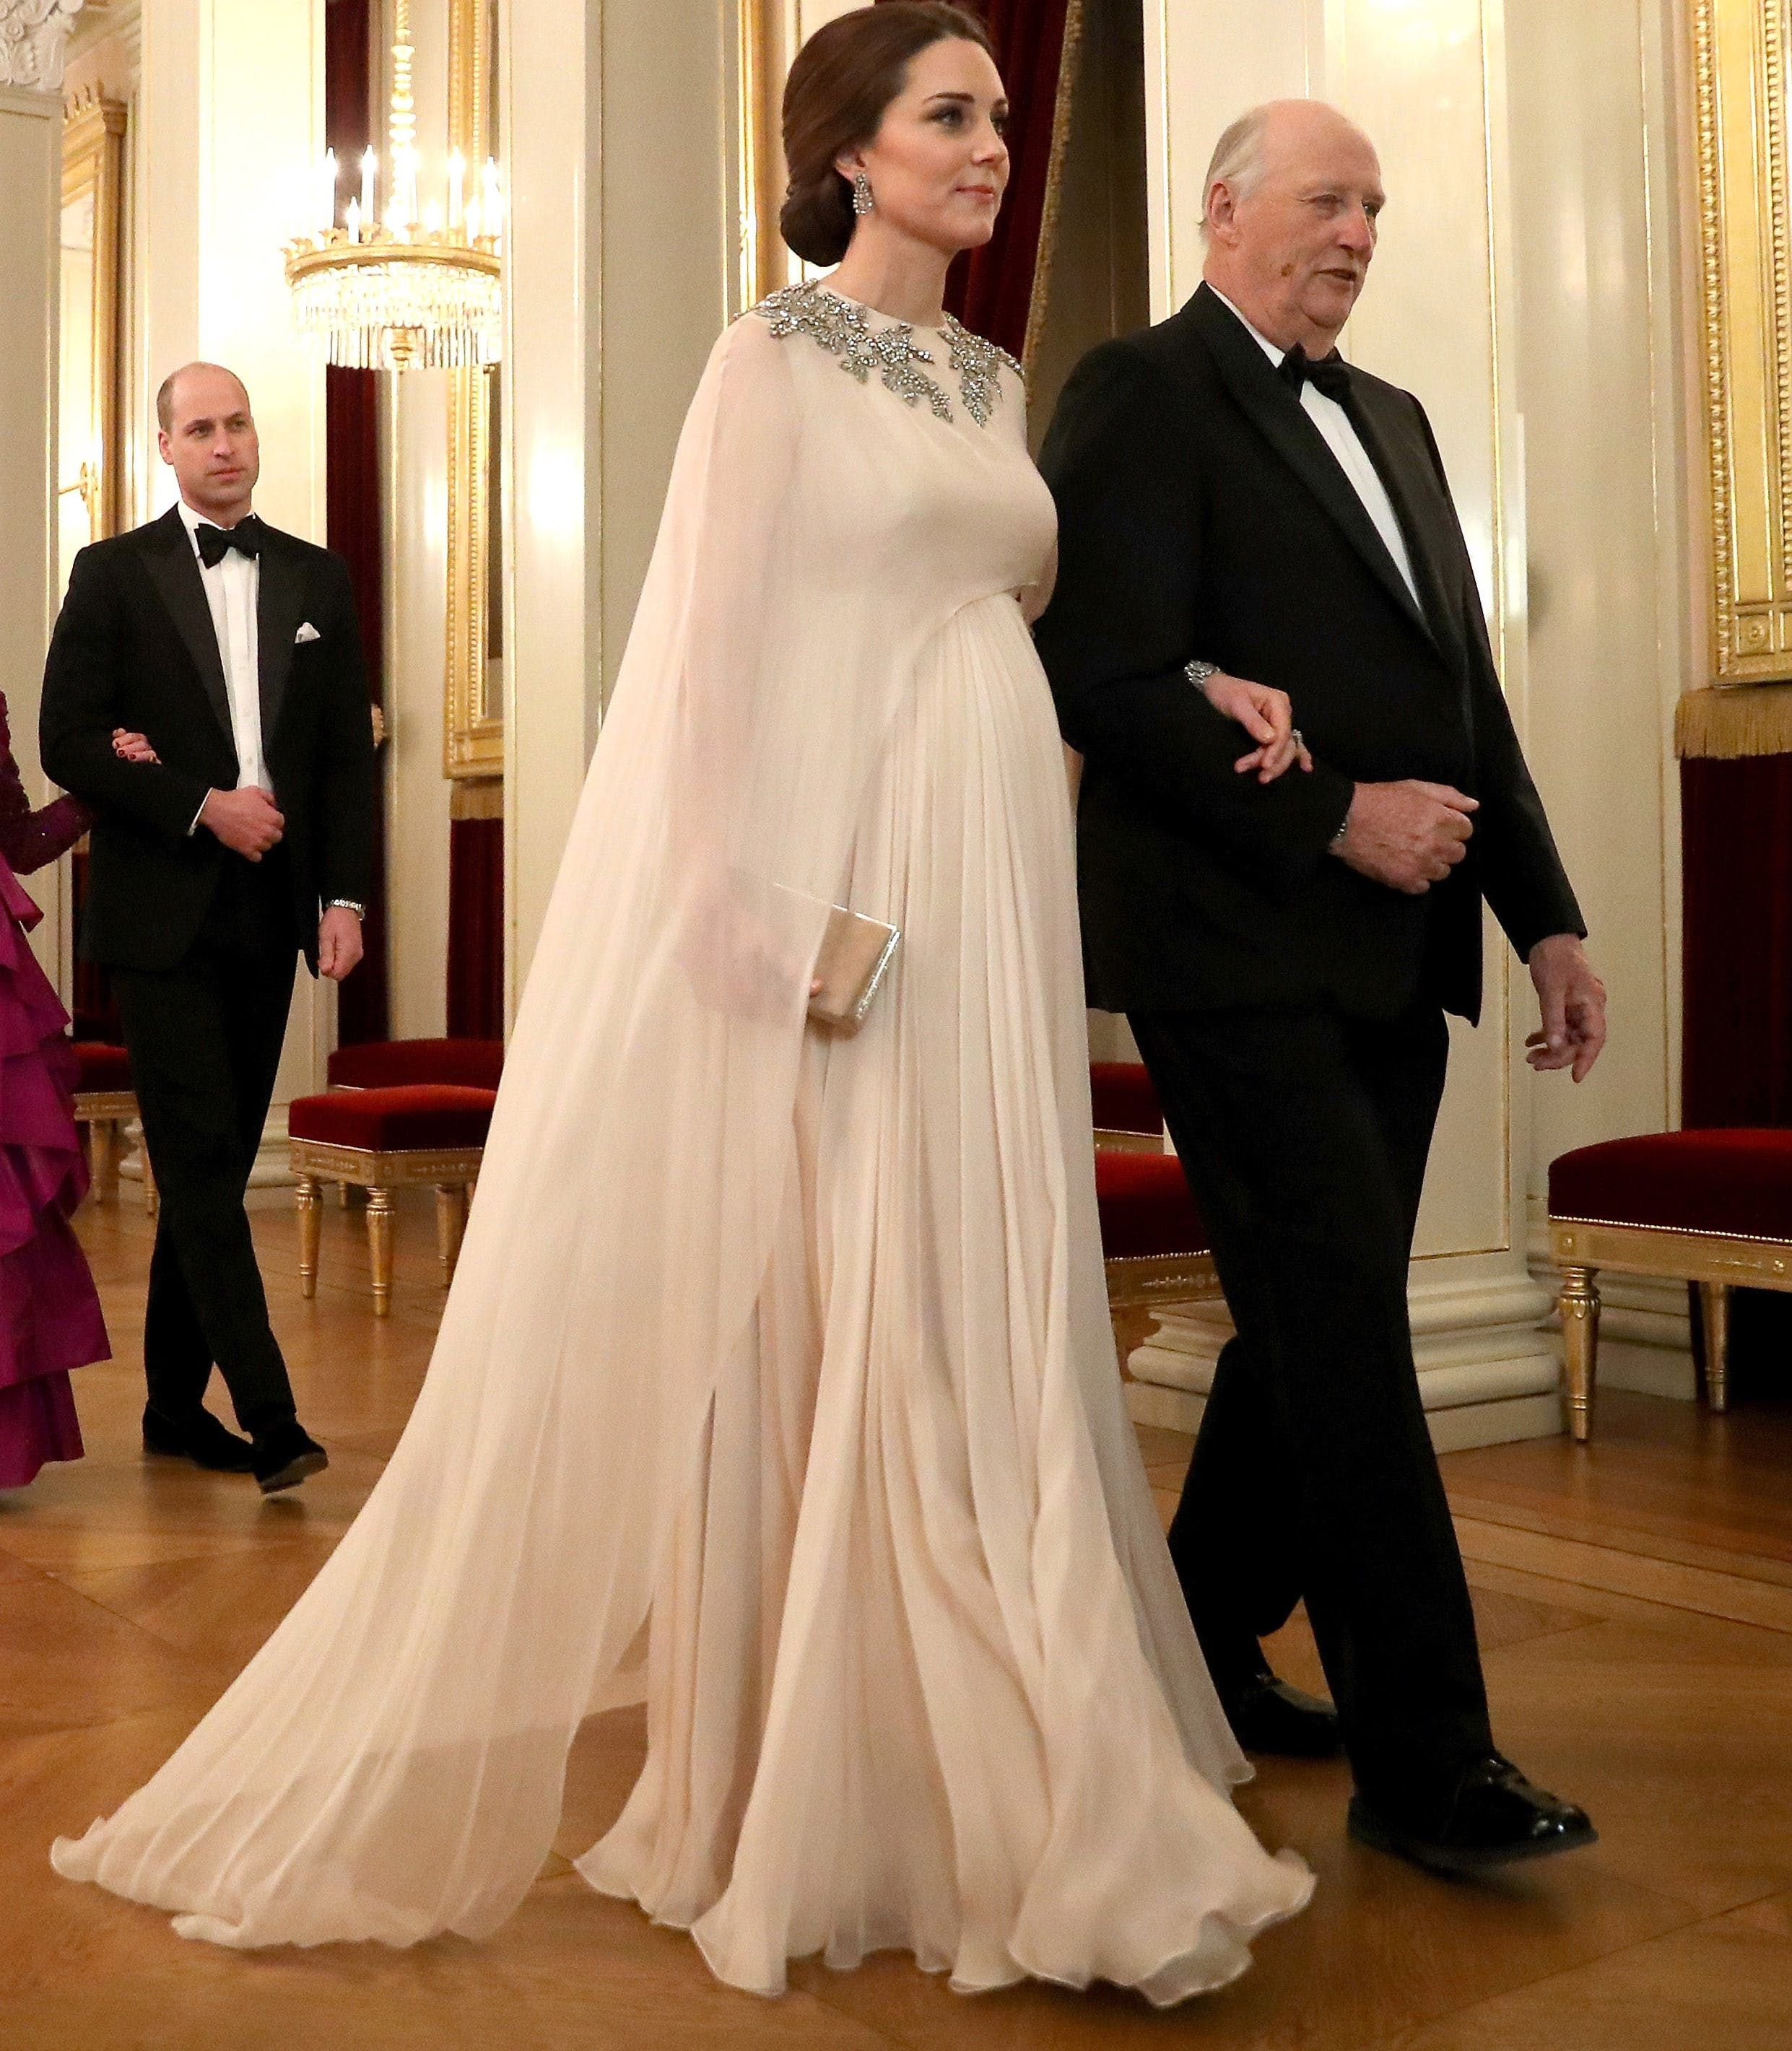 Kate Middleton Wore an Ethereal Capelet Frock by Her Own